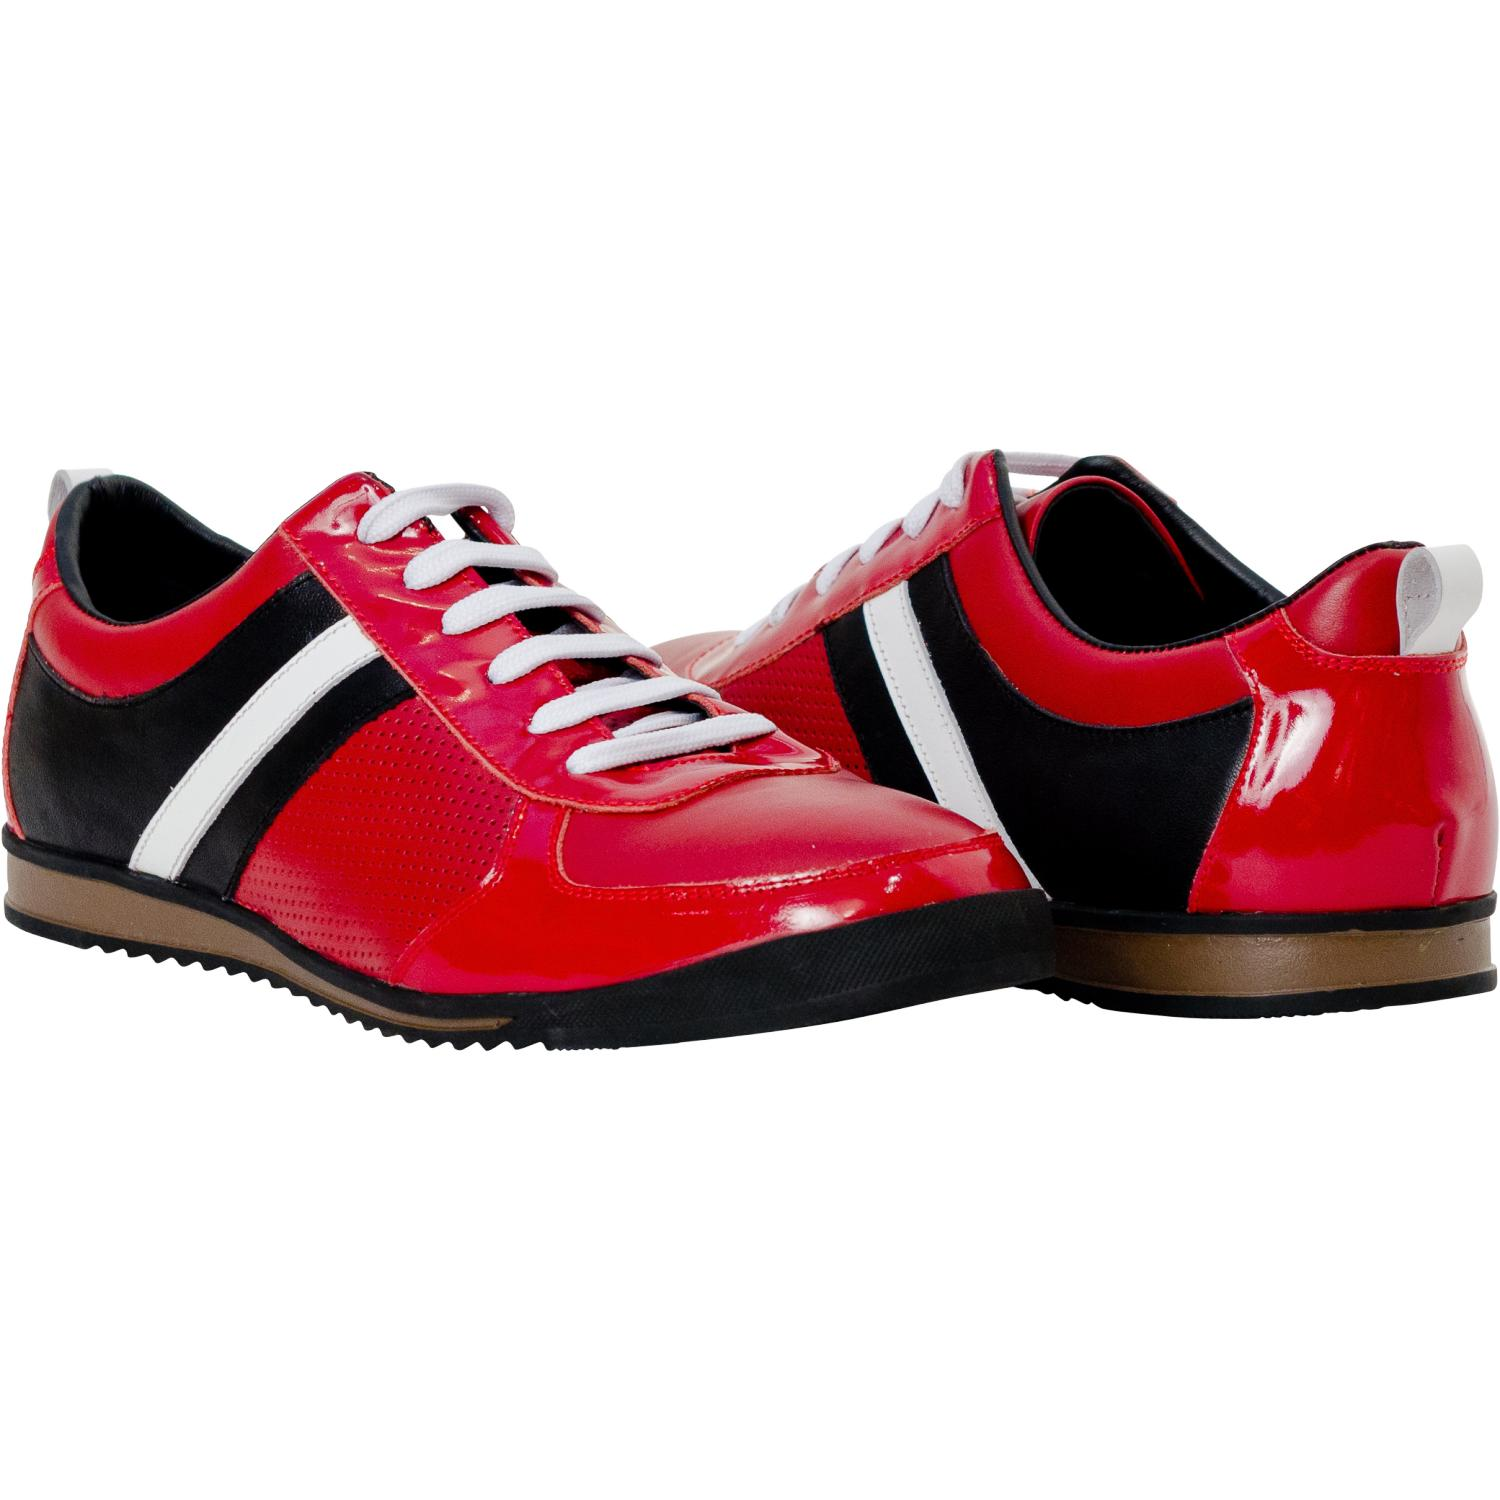 9795e59200ae Coco Red Two Tone Nappa Leather Low Top Sneakers